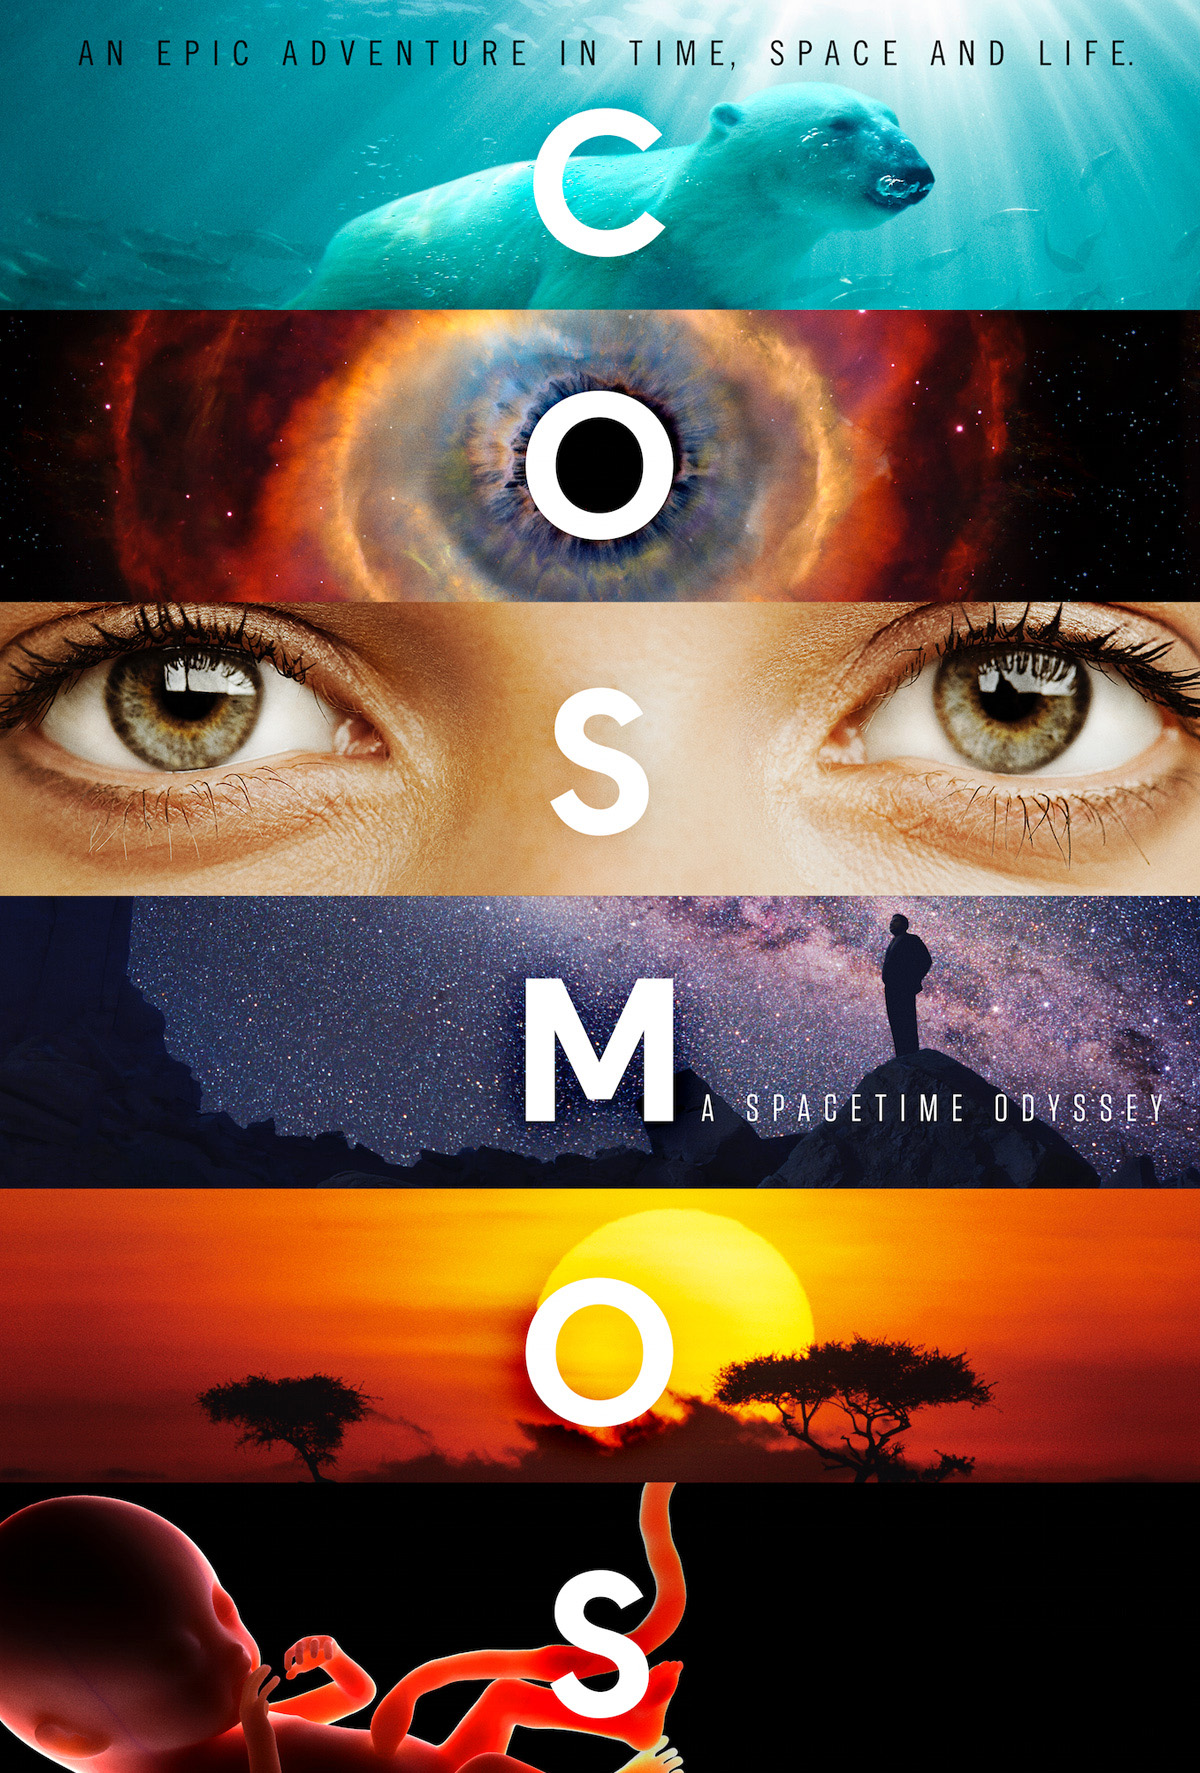 Cosmos A Spacetime Odyssey (2014)